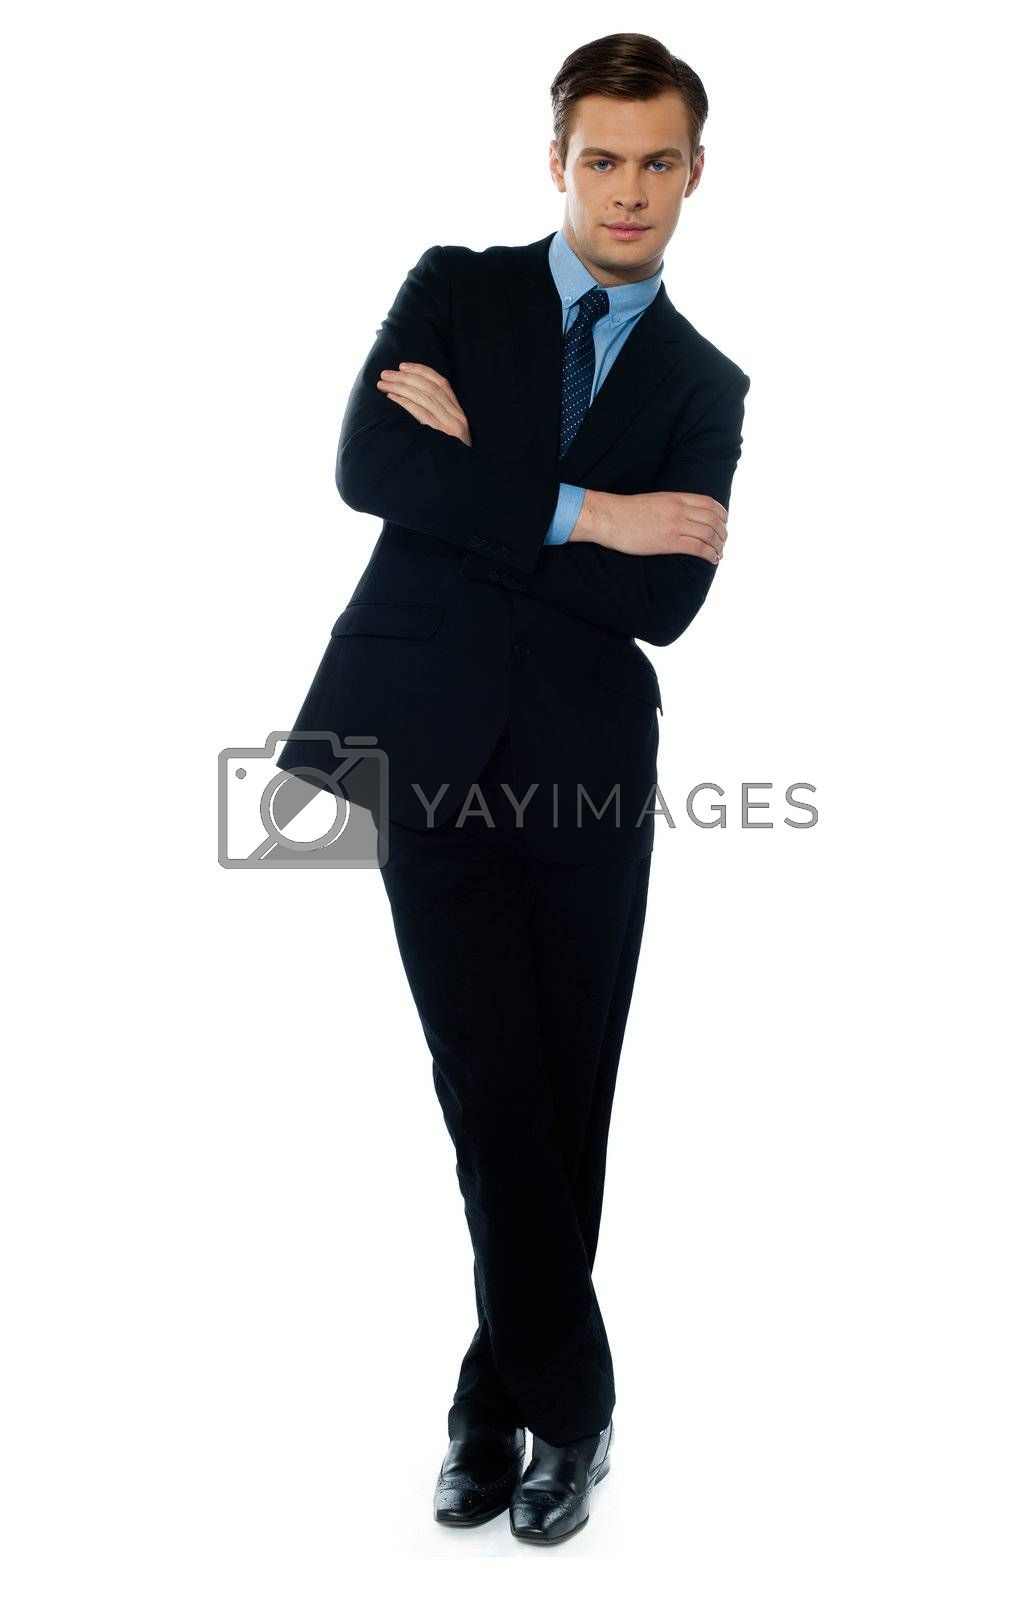 Young buisnessman tilting and smiling against white background